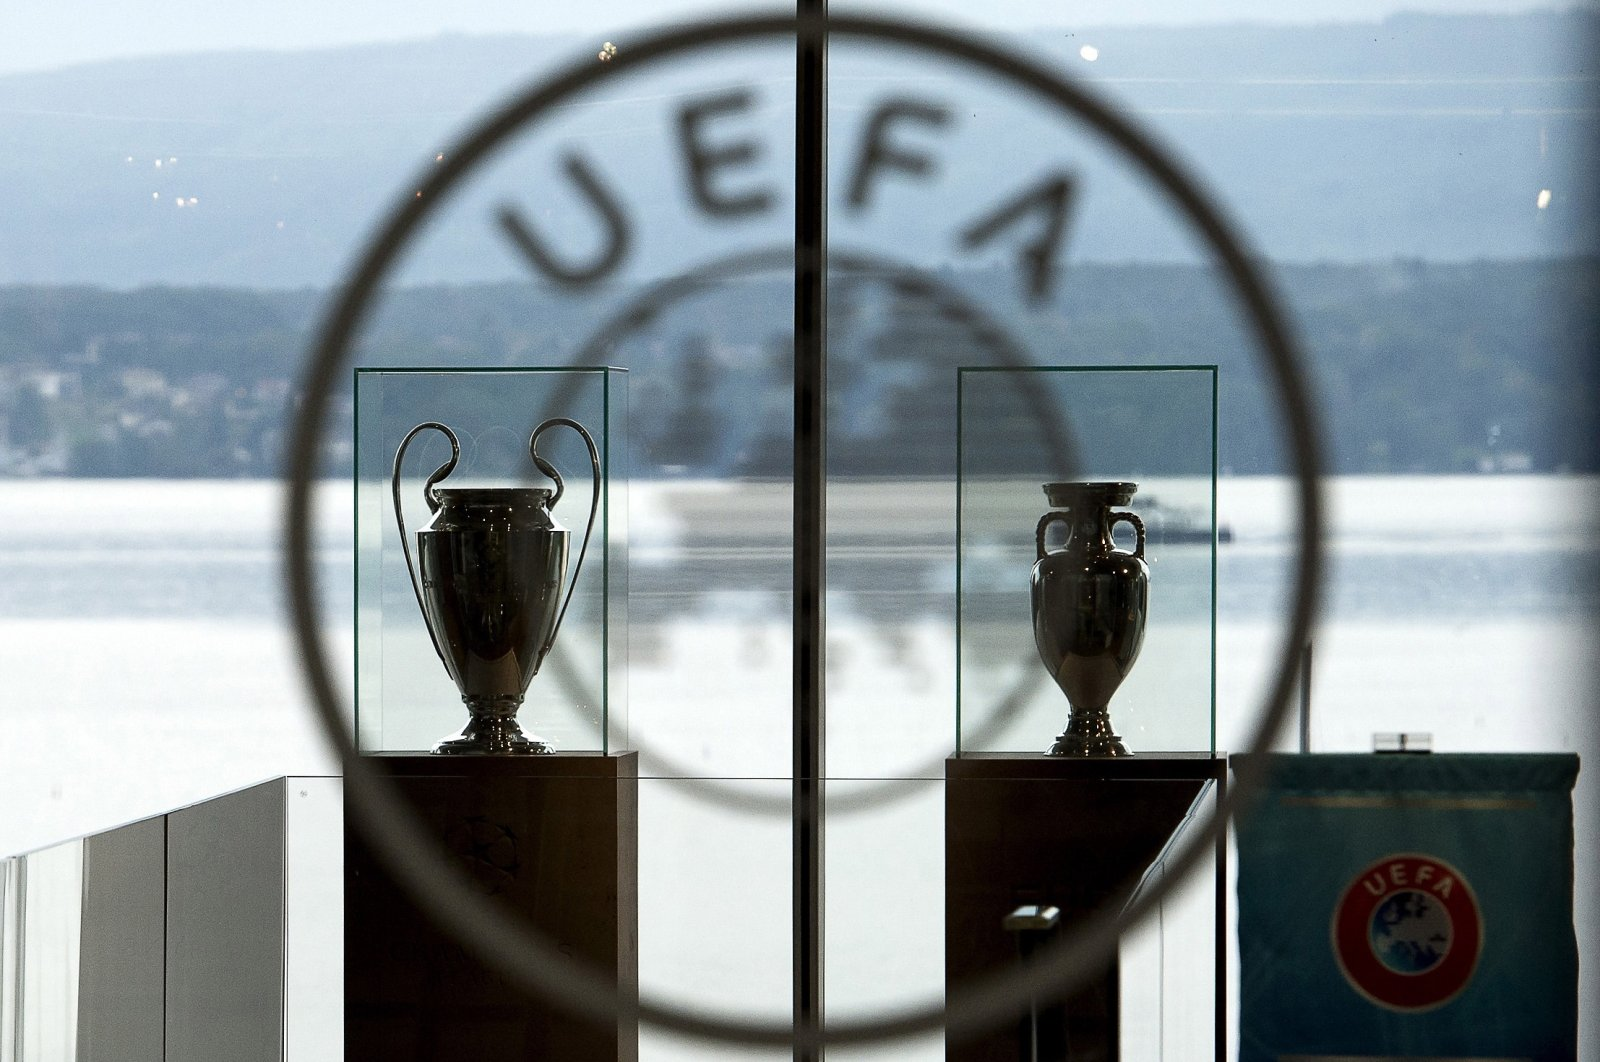 The UEFA Champions League trophy (L) and the Europa League trophy (R) on display at the UEFA headquarters in Nyon, Switzerland, Sept. 18, 2014. (EPA Photo)